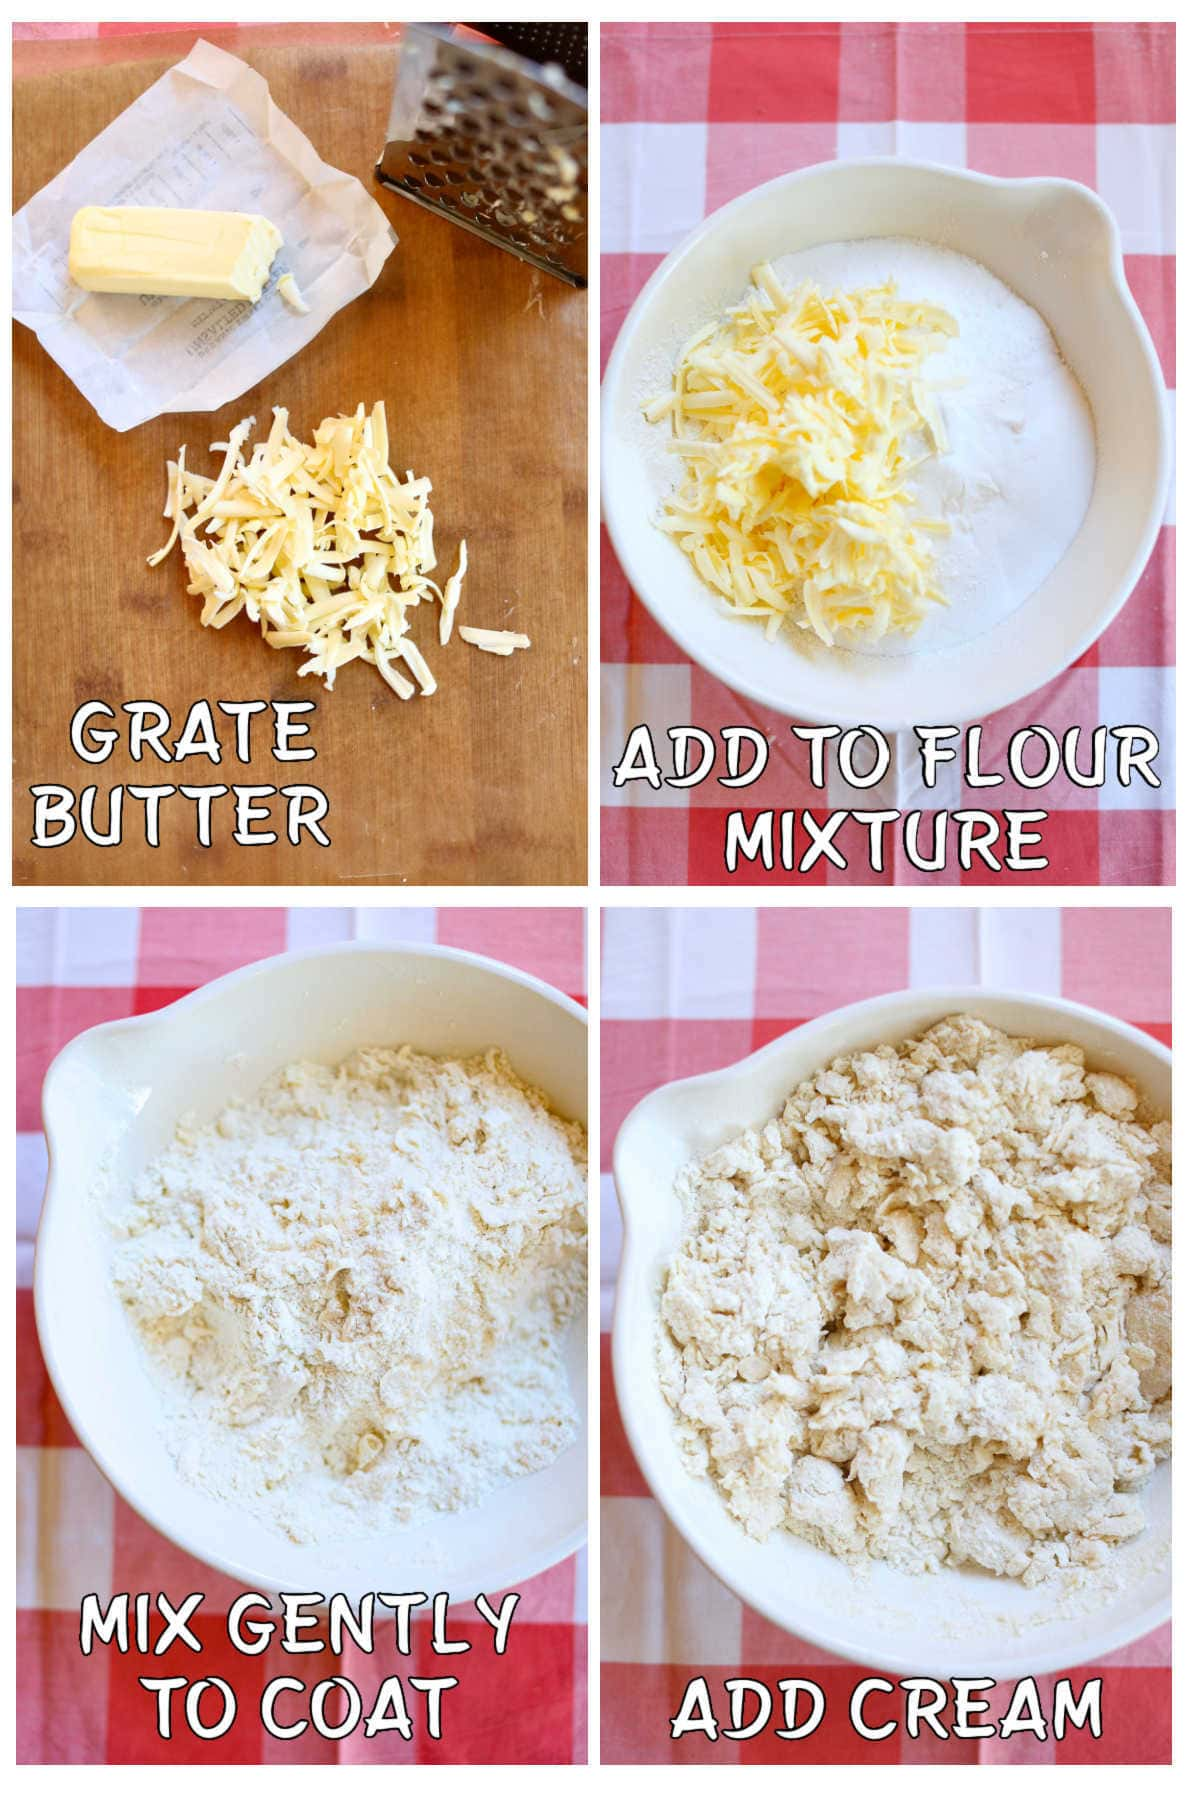 Step by step images in a collage of how to mix the dough for scones.